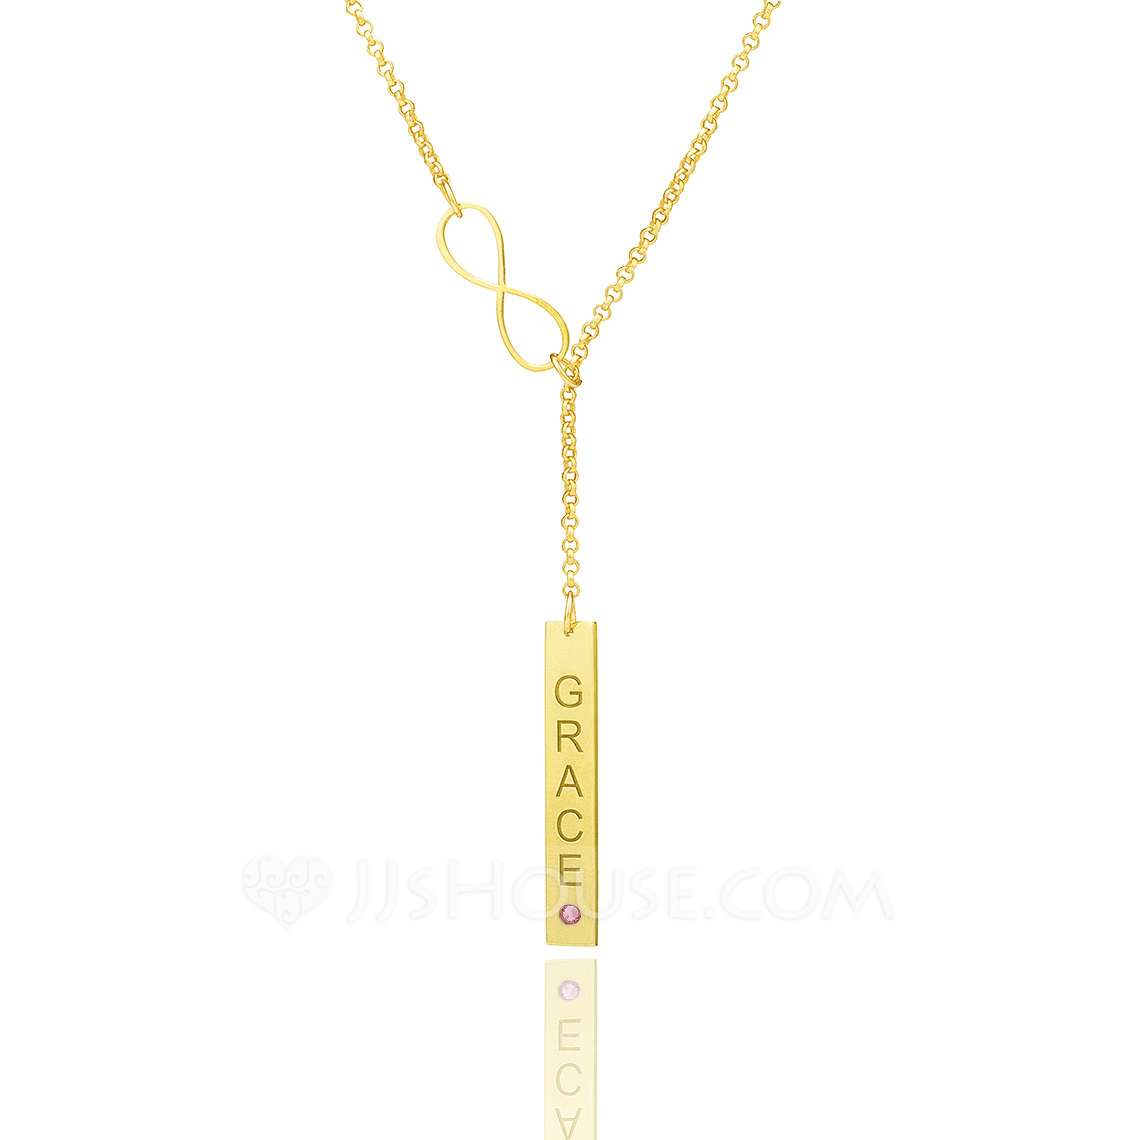 Custom 18k Gold Plated Infinity Birthstone Necklace Bar Necklace With Diamond - Birthday Gifts Mother's Day Gifts